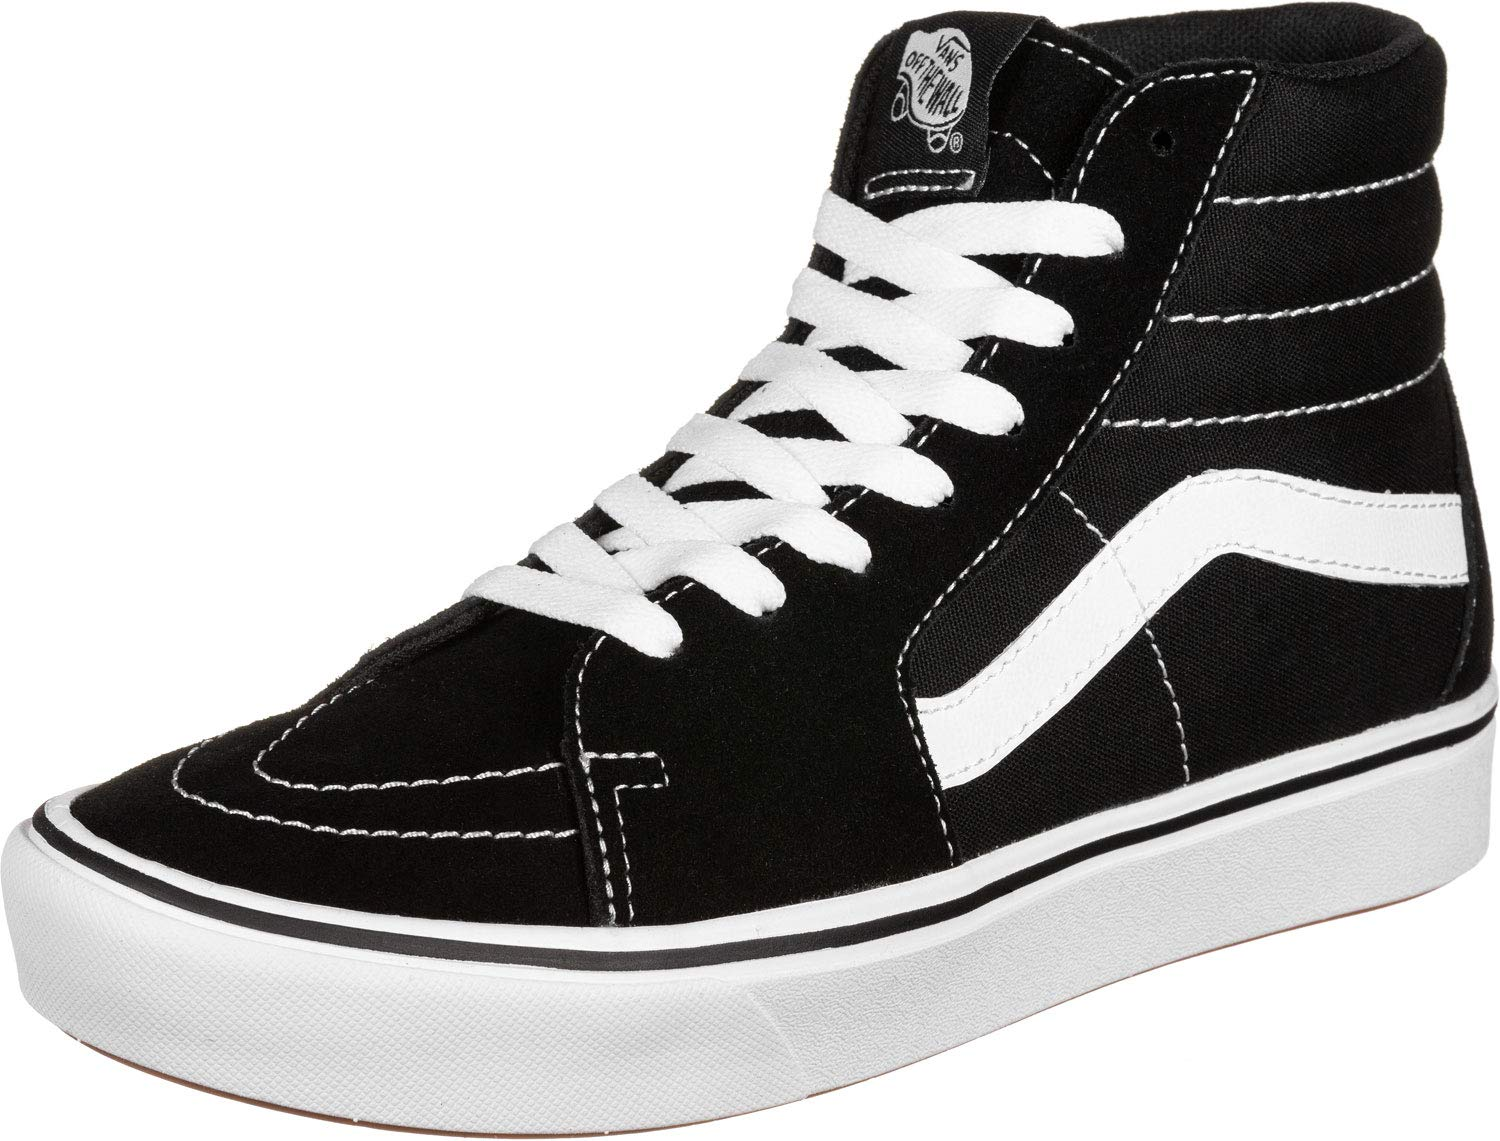 469eec5ce8 Amazon.com: Vans Comfycush Sk8-Hi Black/White Skate/Casual (VN0A3WMBVNE):  Sports & Outdoors